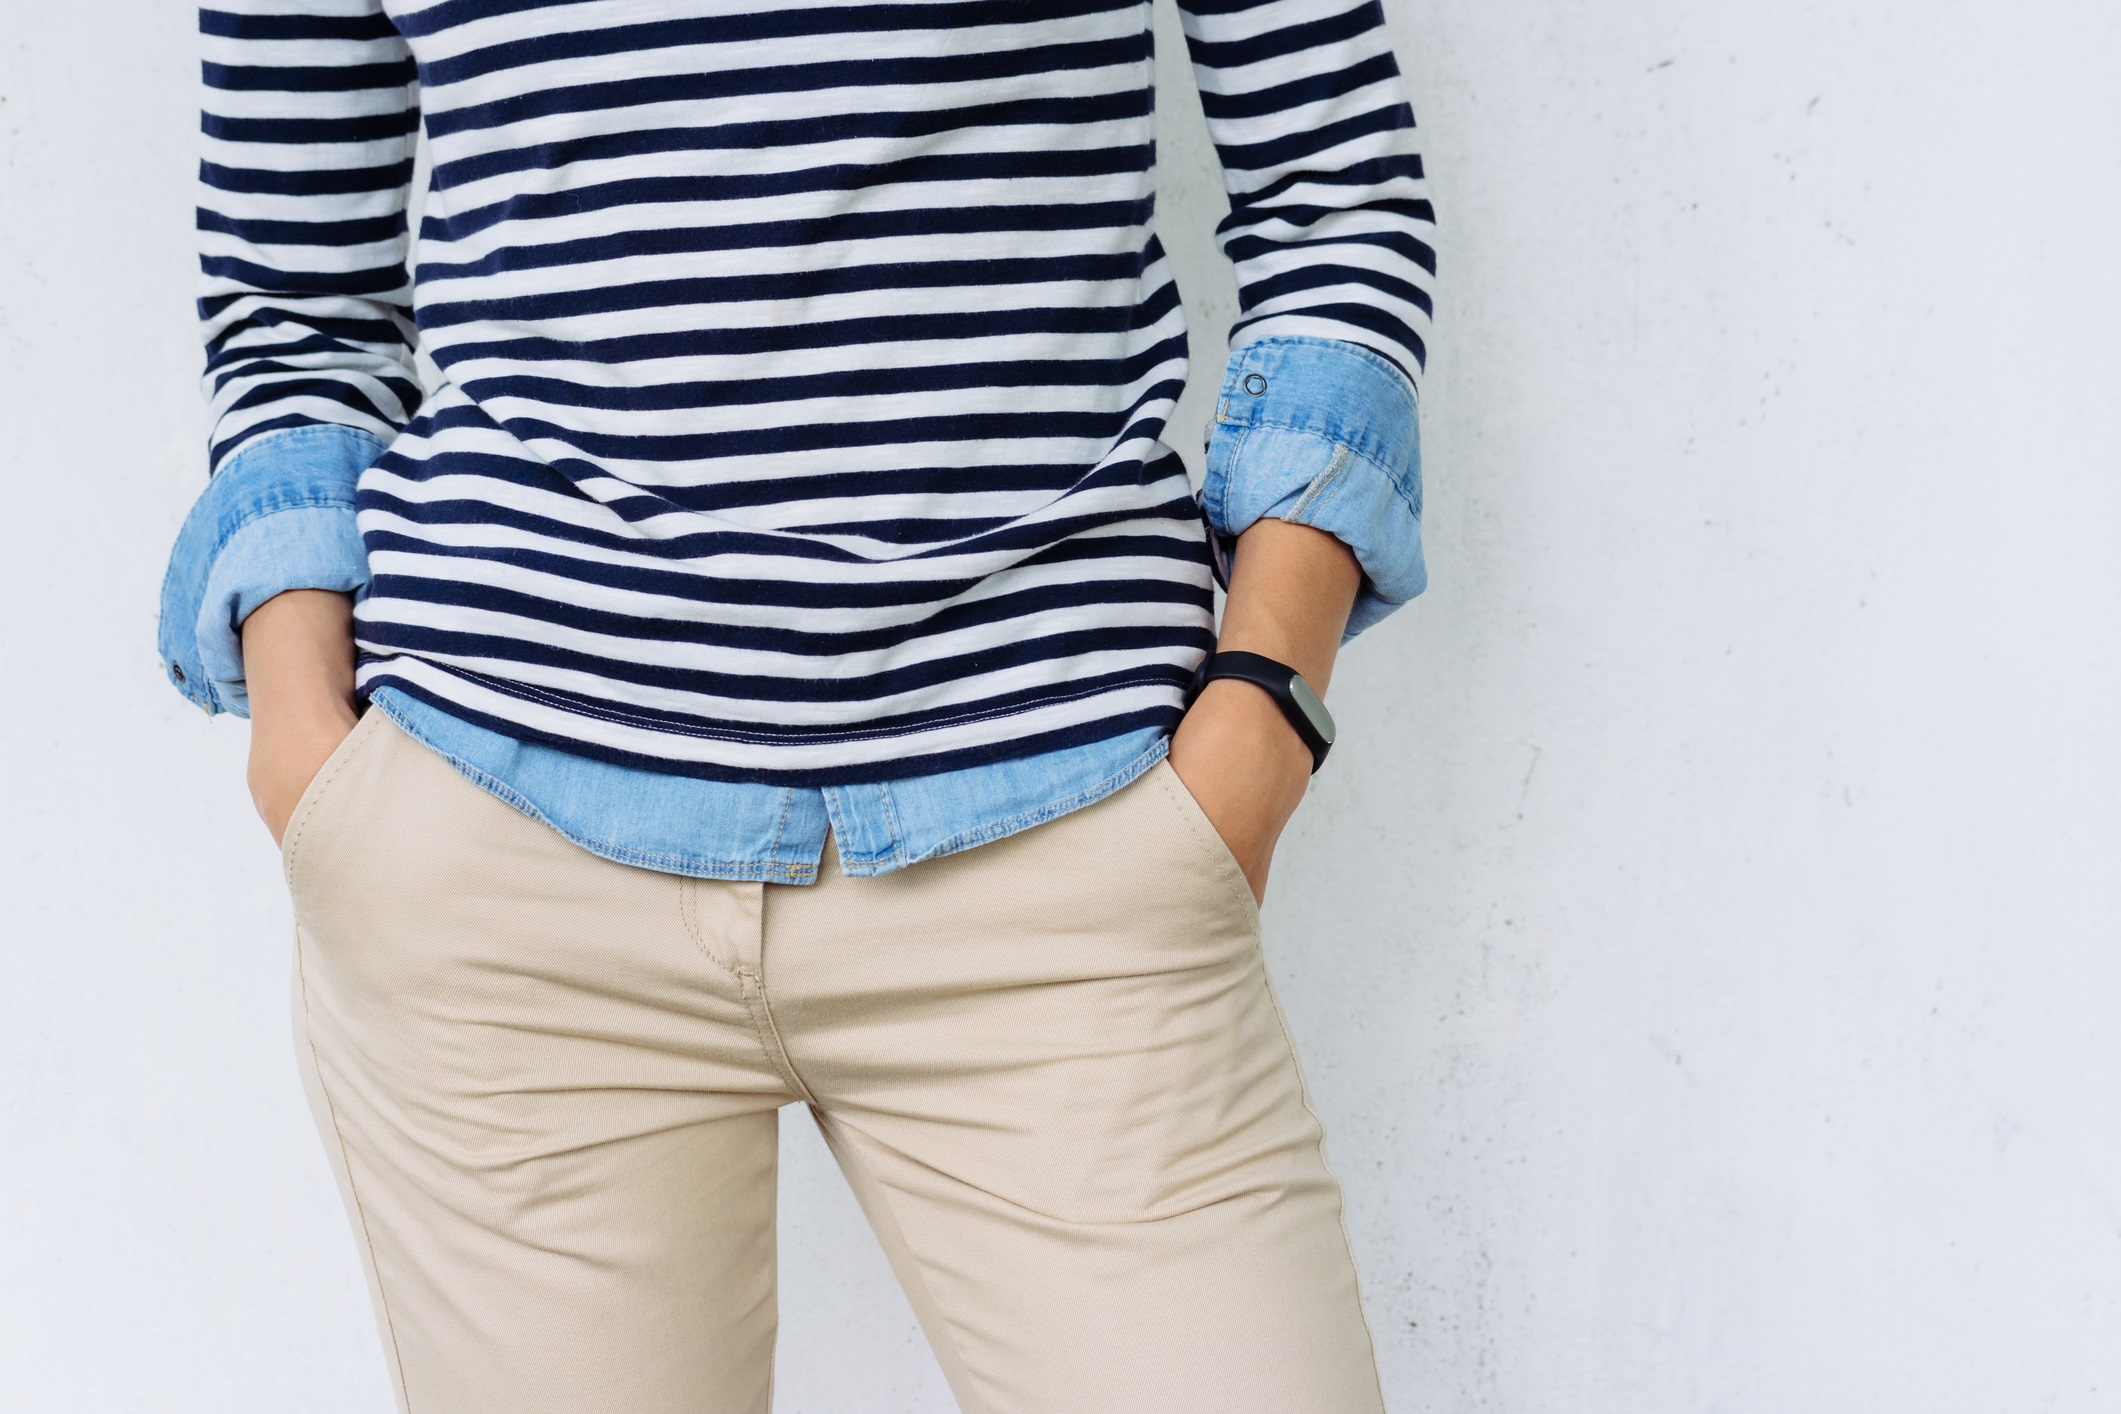 Men's Fashion to Steal